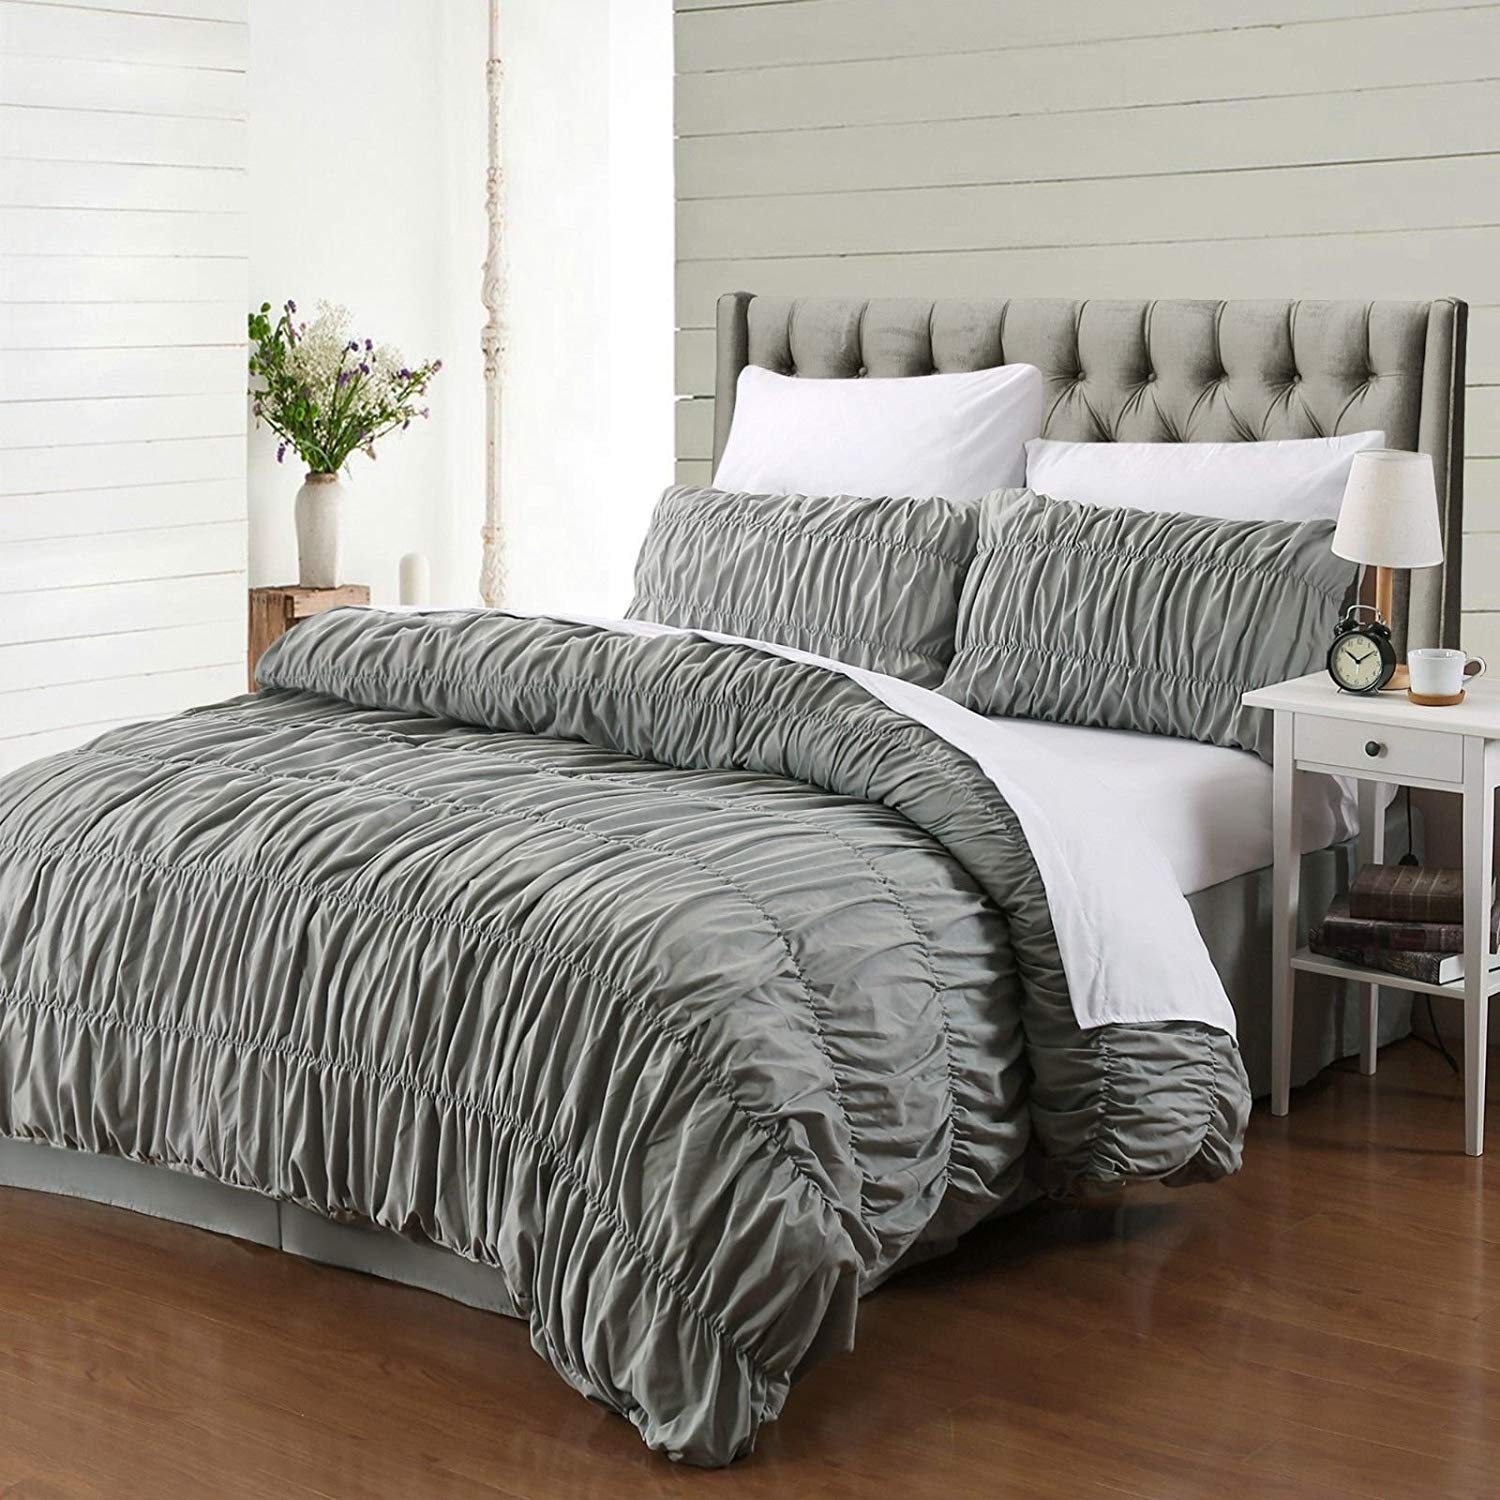 AMOR & AMORE 3 Pcs Ruffled Duvet Cover Set Grey Shabby Chic Bedding, Ruched Bedding Duvet Set Shabby Chic Bedroom Decor (Queen Size)